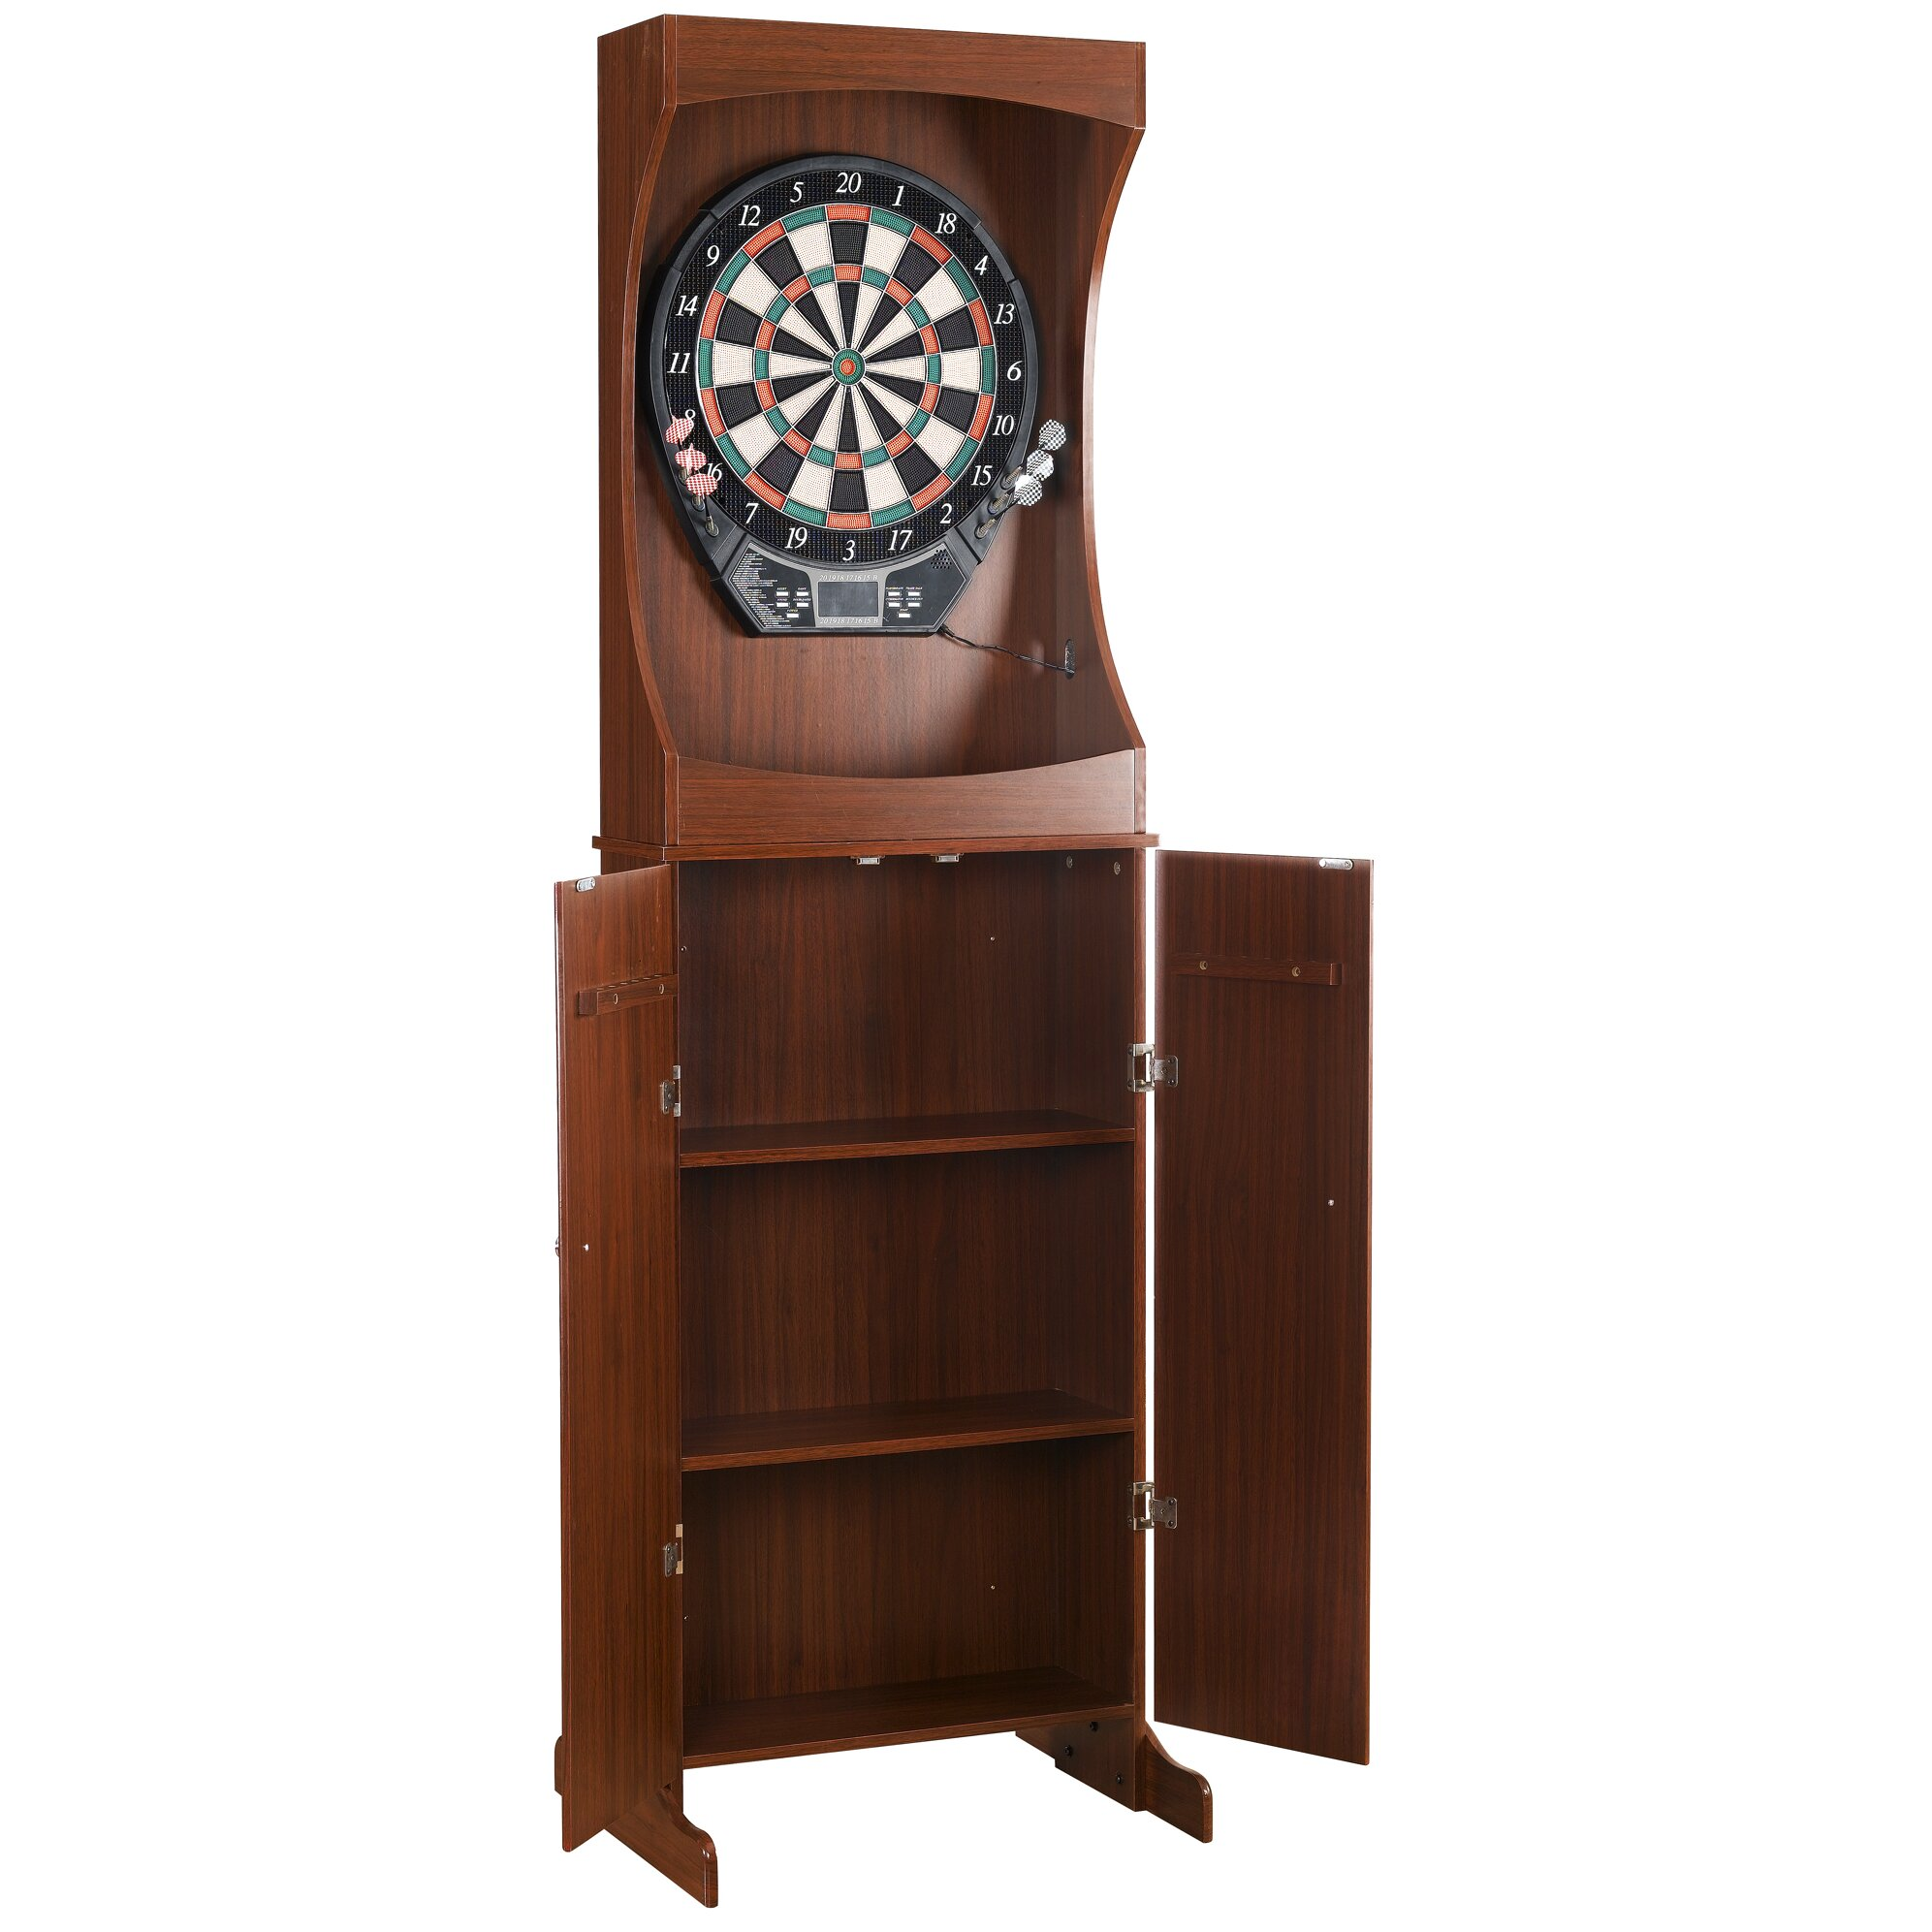 Dart Board Cabinet With Chalkboard Hathaway Games Outlaw Free Standing Dartboard And Cabinet Set